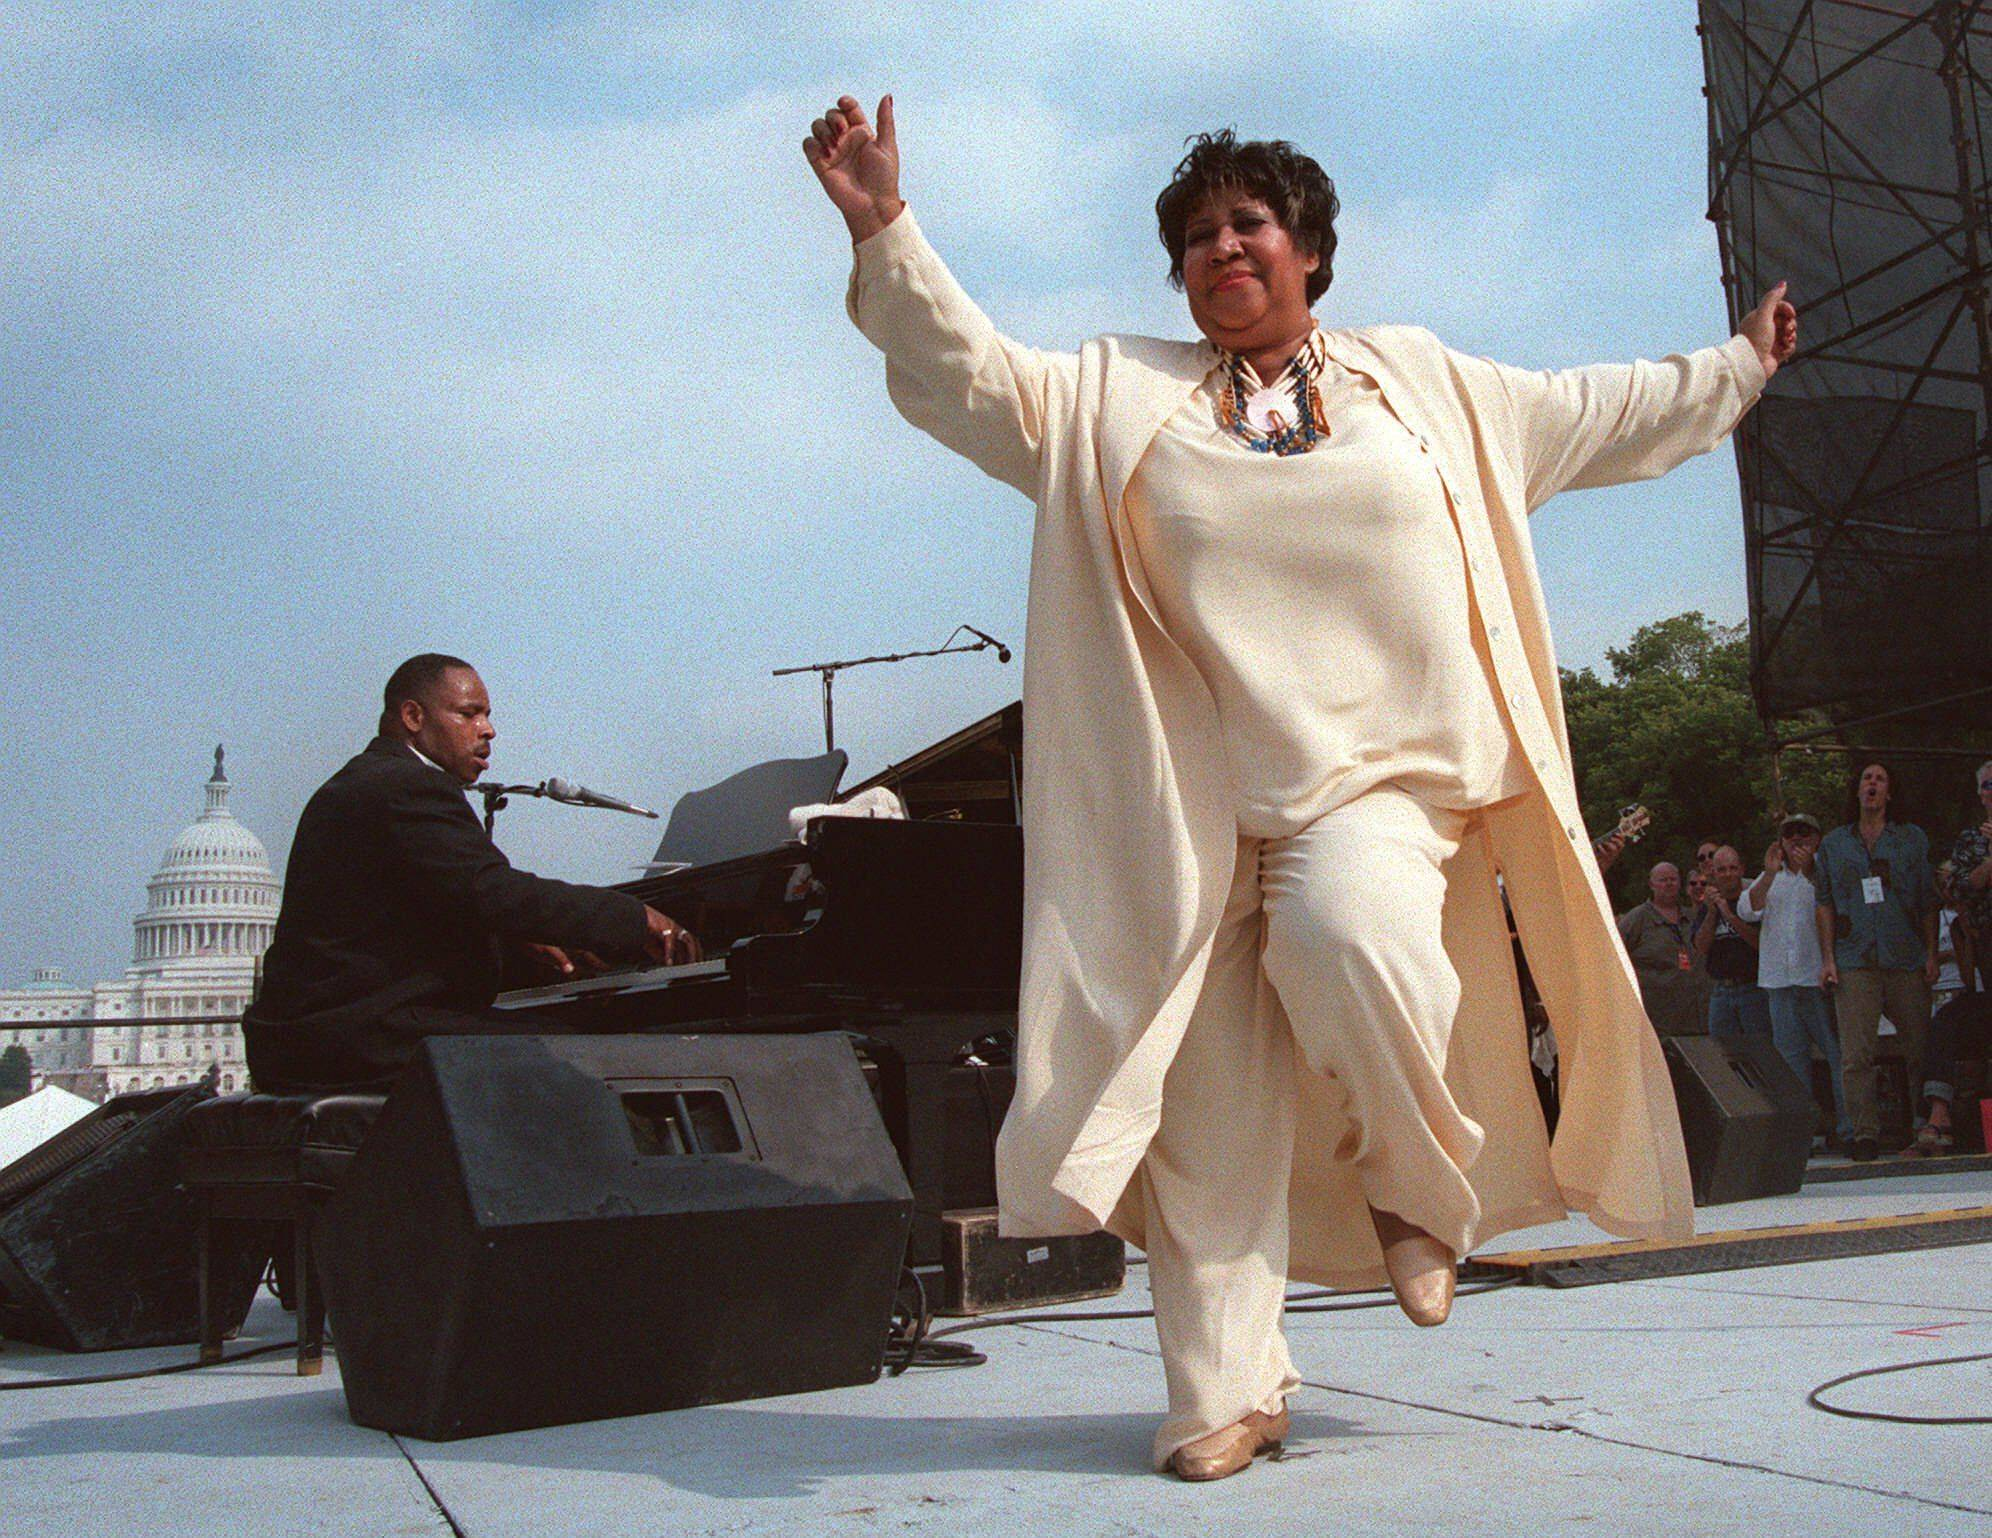 Singer Aretha Franklin dances on stage during the first annual march on cancer Saturday, Sept. 26, 1998, in Washington. The daylong event, known as ``The March,'' drew thousands of cancer survivors, patients, and loved ones descending on the National Mall to remember cancer victims and to ask for more research funds.